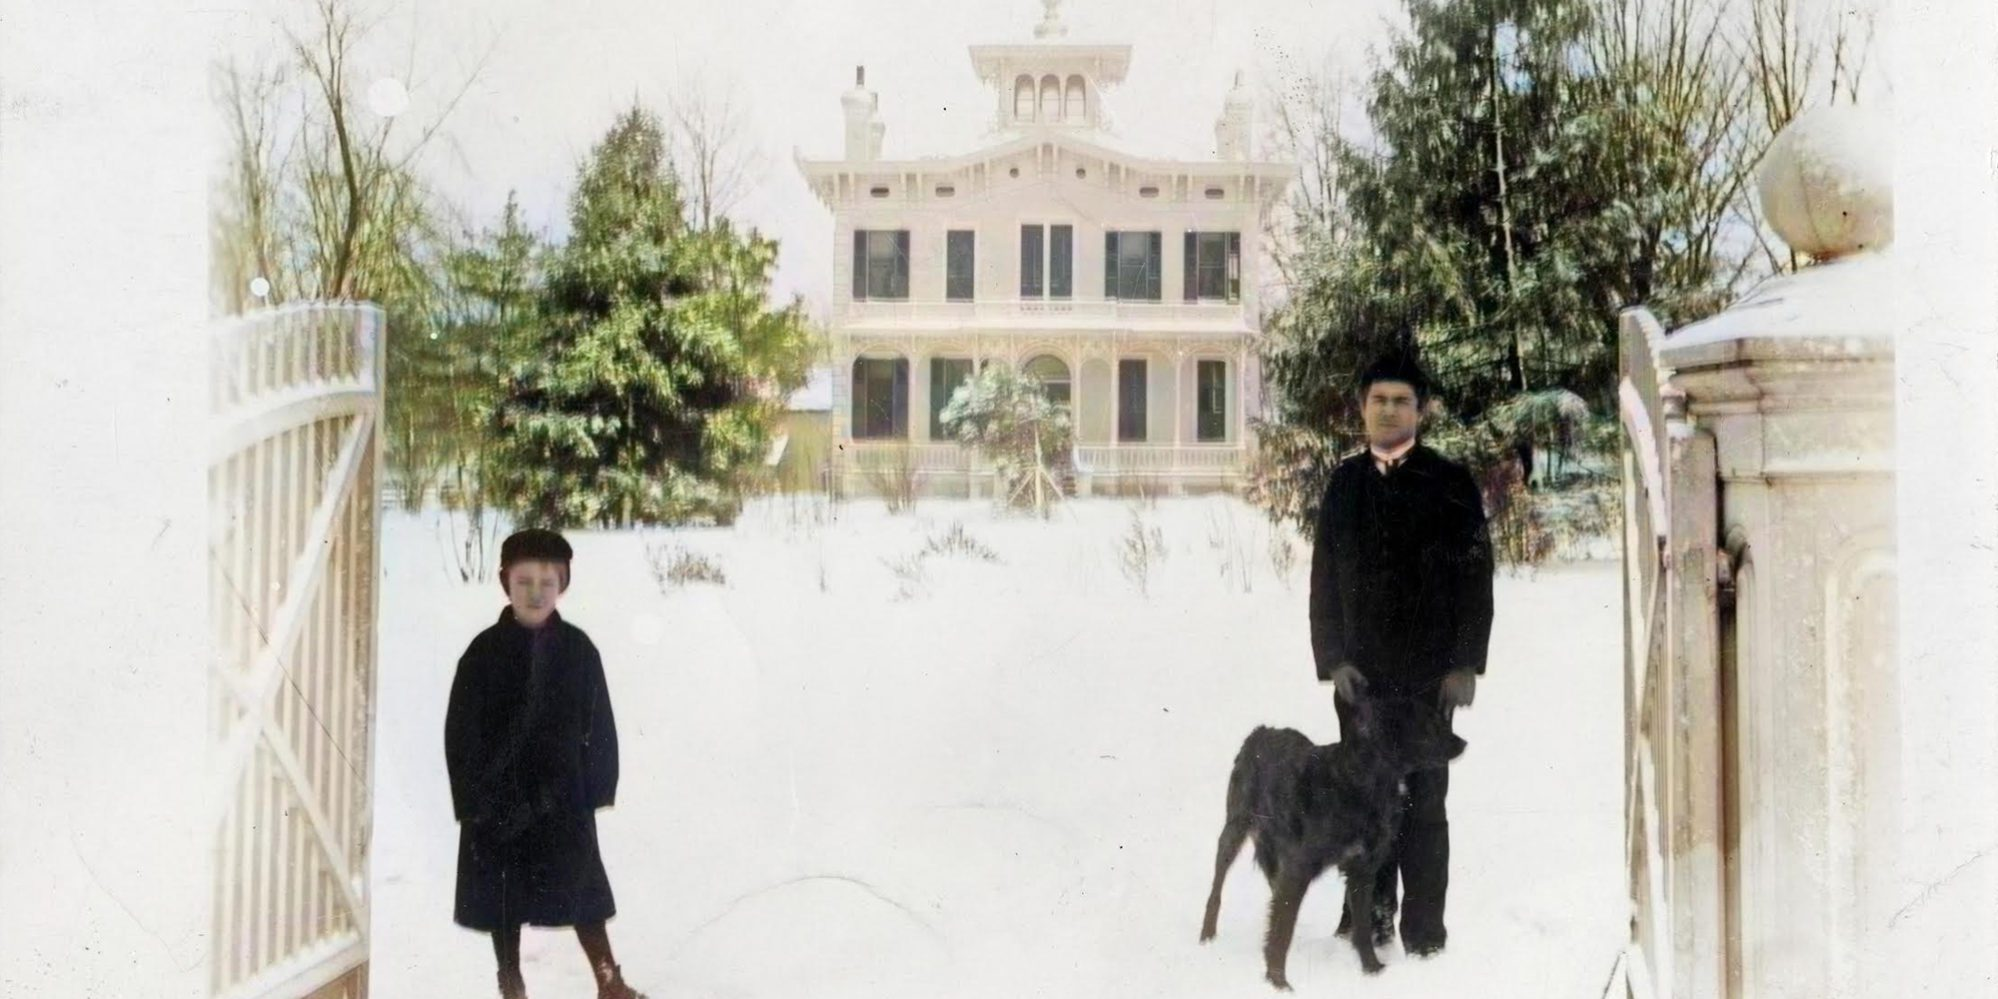 The John Withnell Dunn mansion in the winter of 1883. Colorization by Mark Loehrer (@archcityhistory).